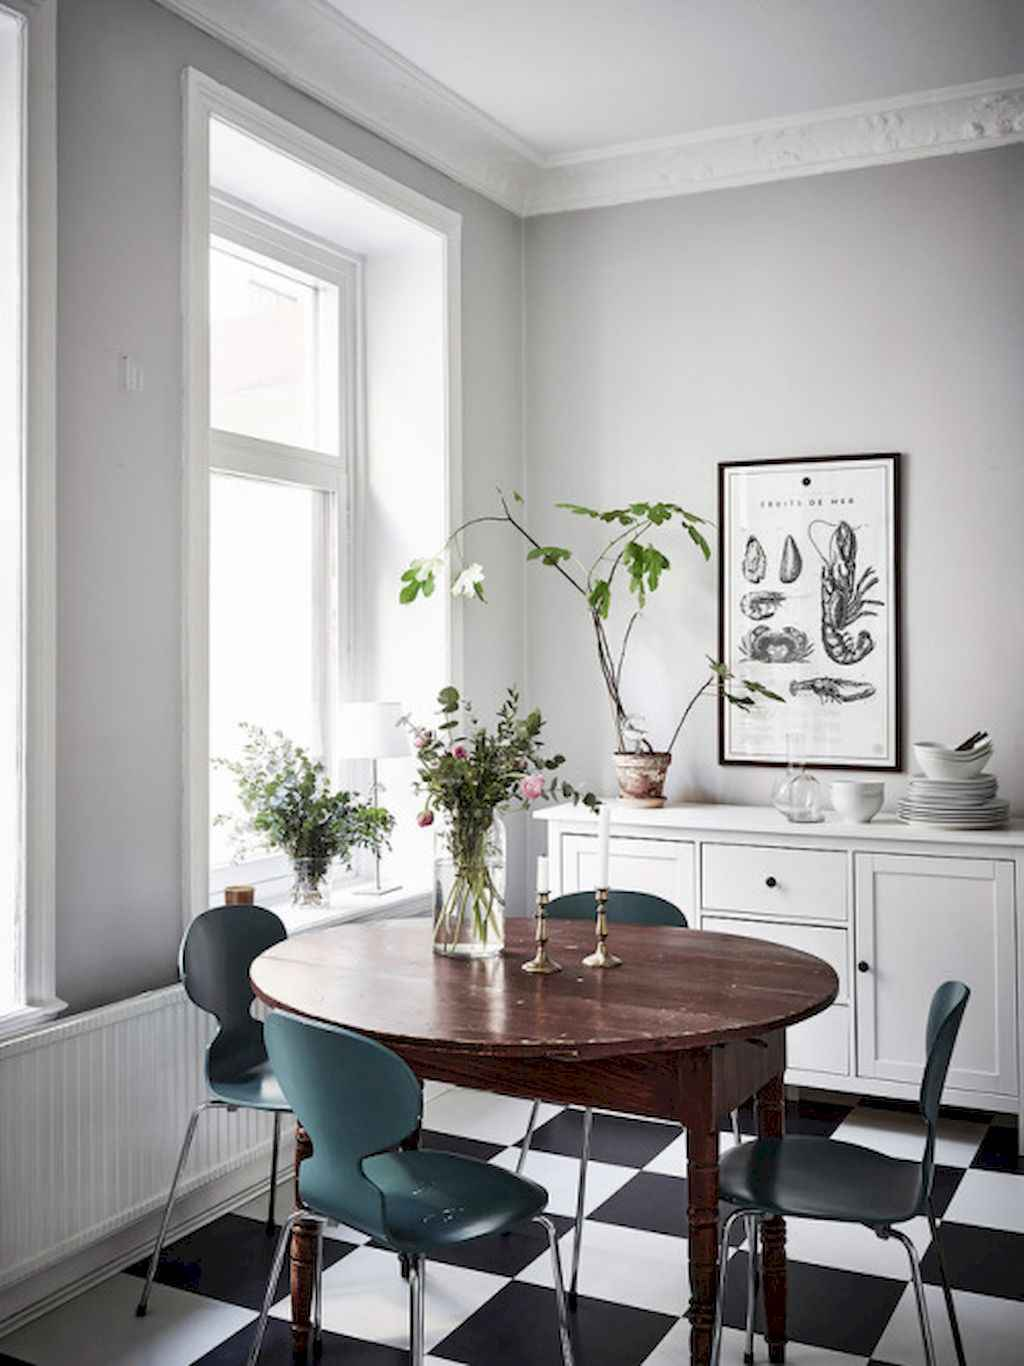 Clever small dining room ideas (59)